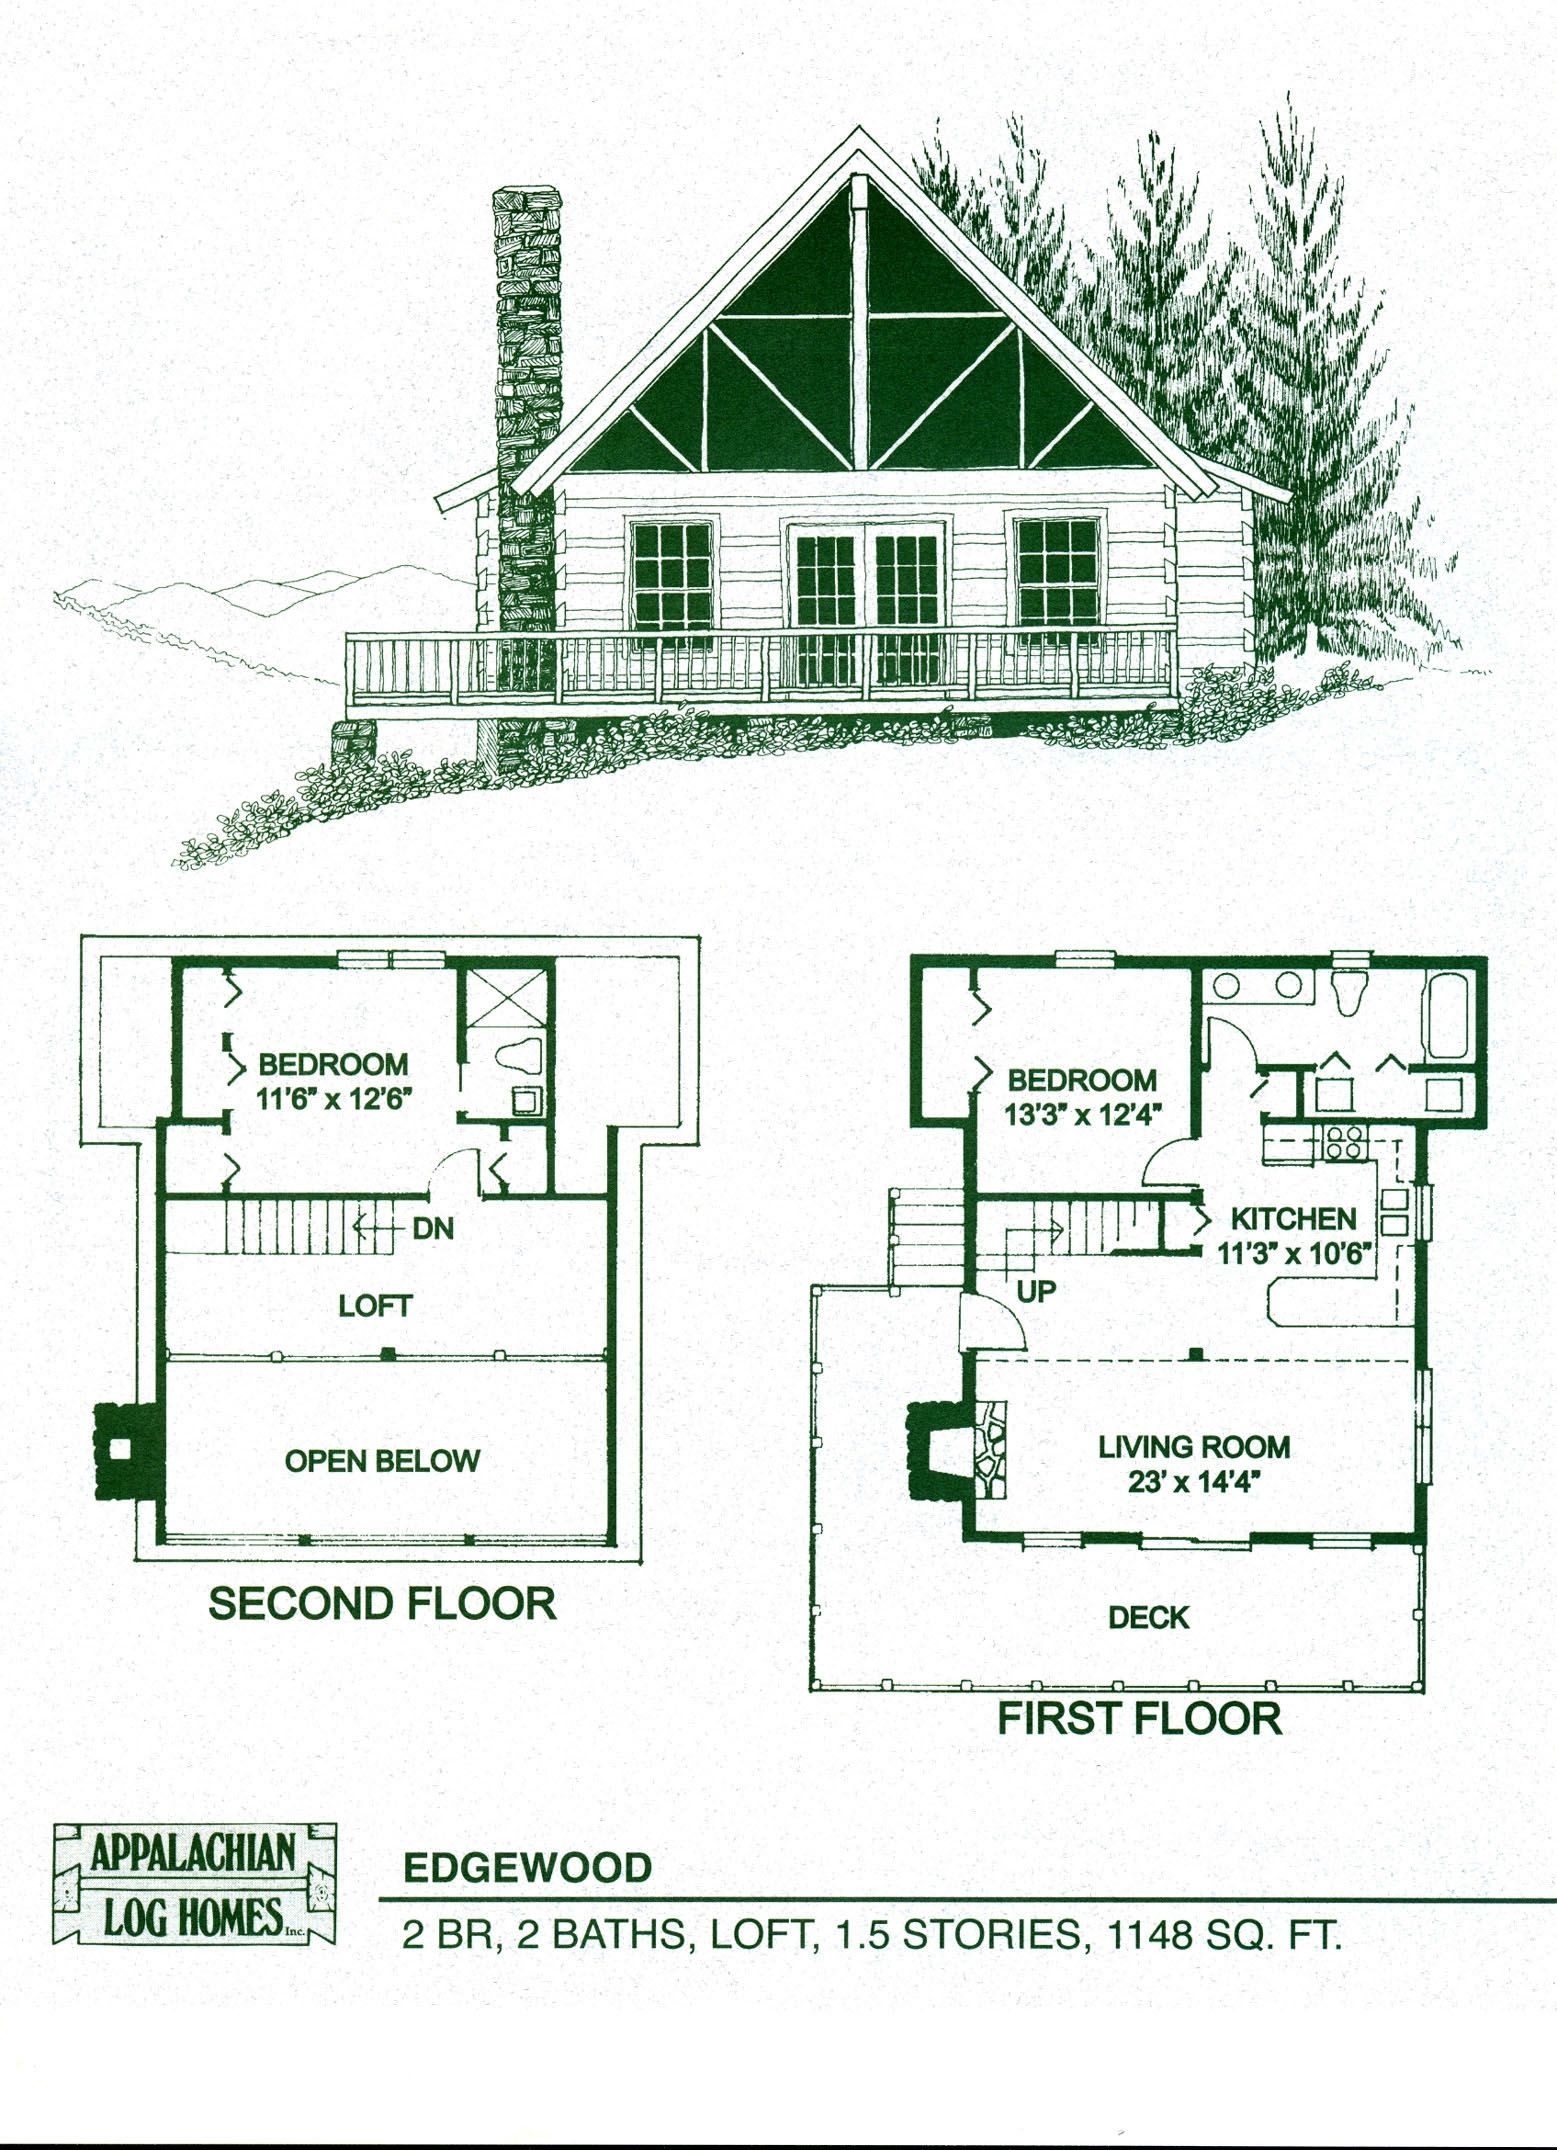 Prodigious Cabin House Plans with Loft On Breathtaking Floor Plans for A Small Log Cabin On Cabin House Plans with Loft